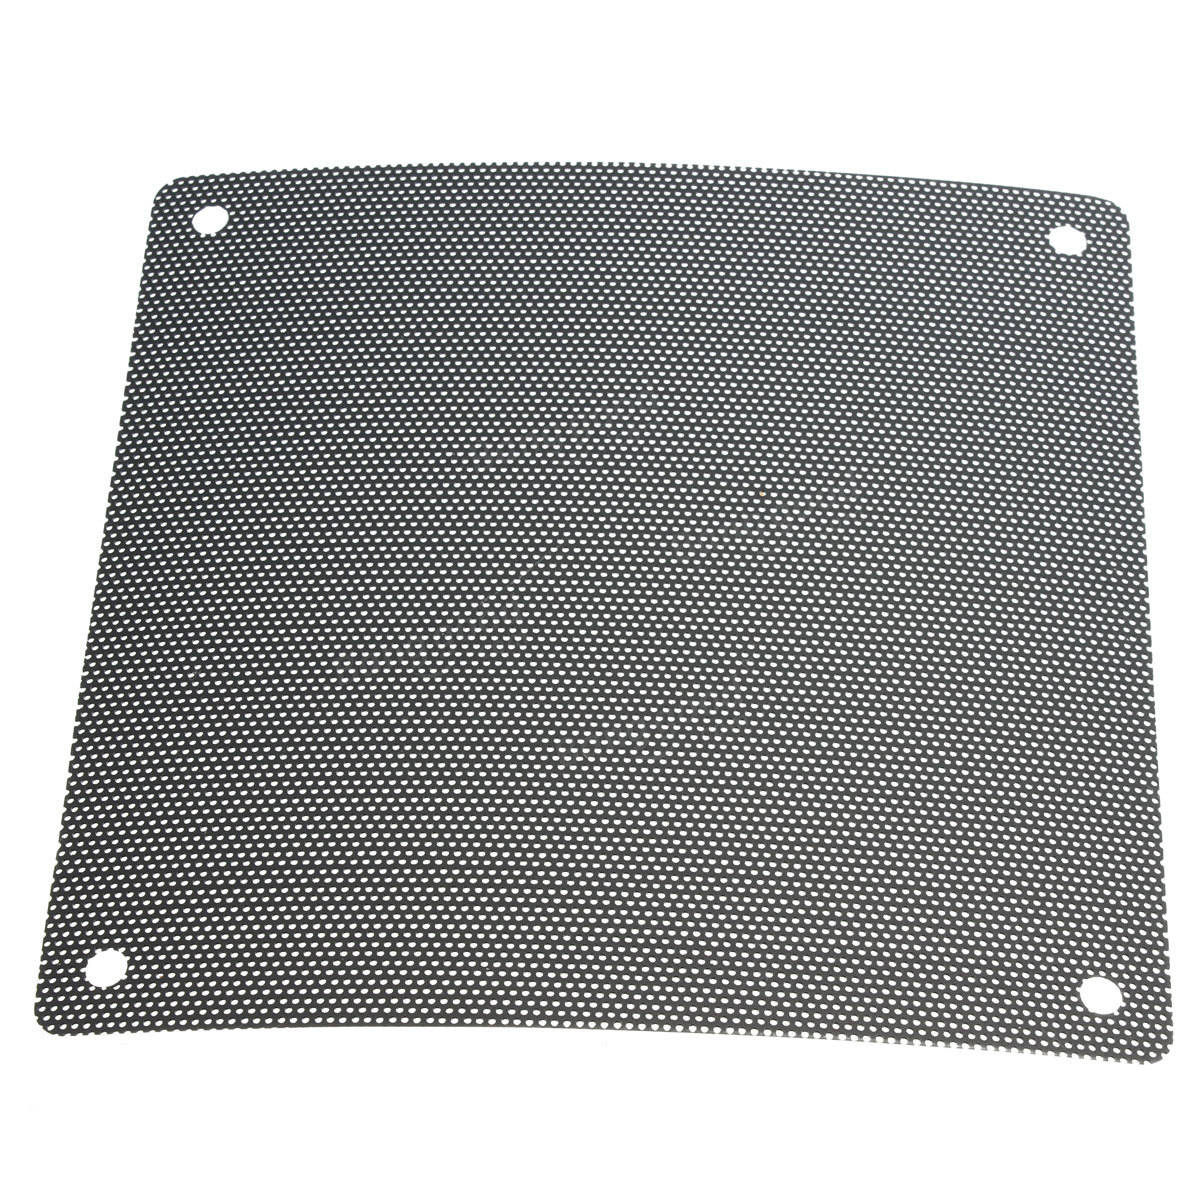 Cuttable Black PVC PC Fan Dust Filter Dustproof Case Computer Mesh 120mm